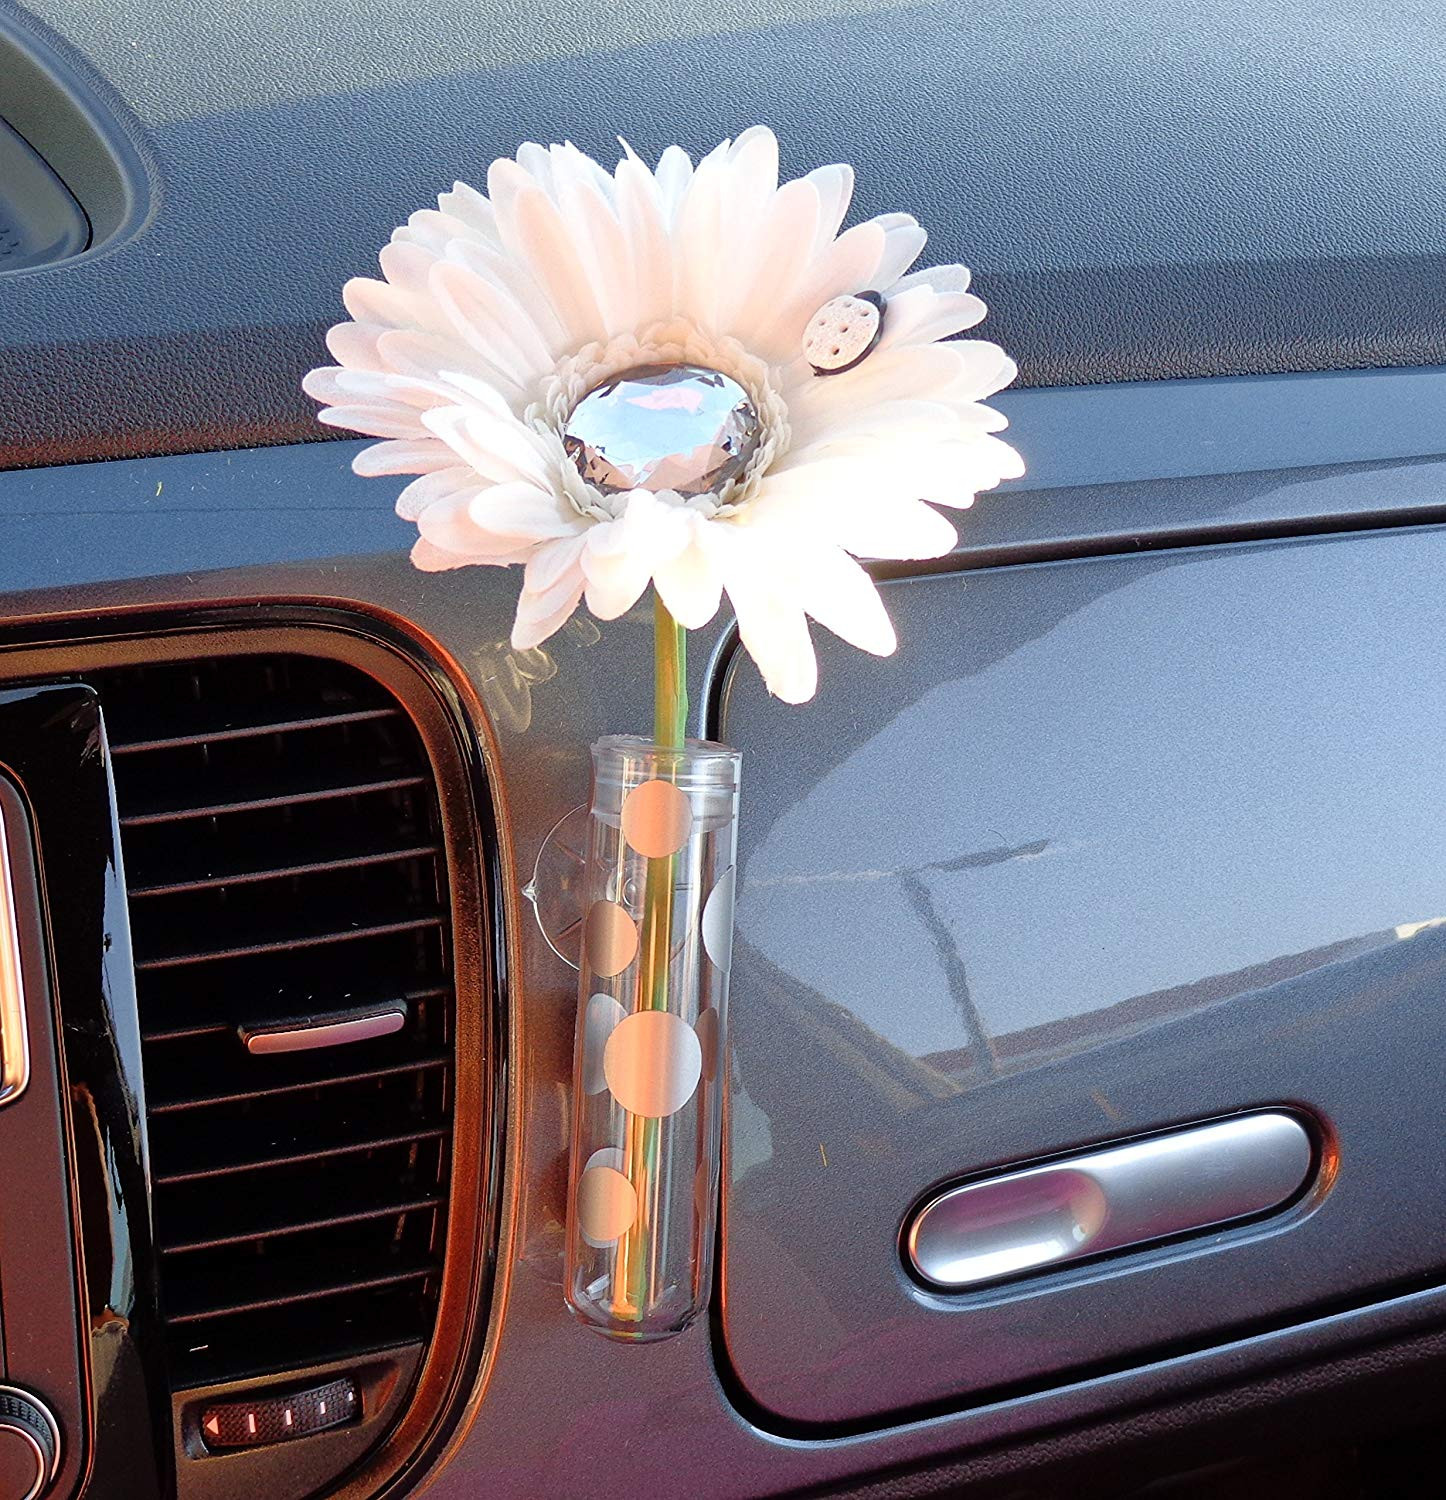 new beetle flower vase of amazon com vw beetle flower white and diamond bling daisy with throughout amazon com vw beetle flower white and diamond bling daisy with universal vase automotive